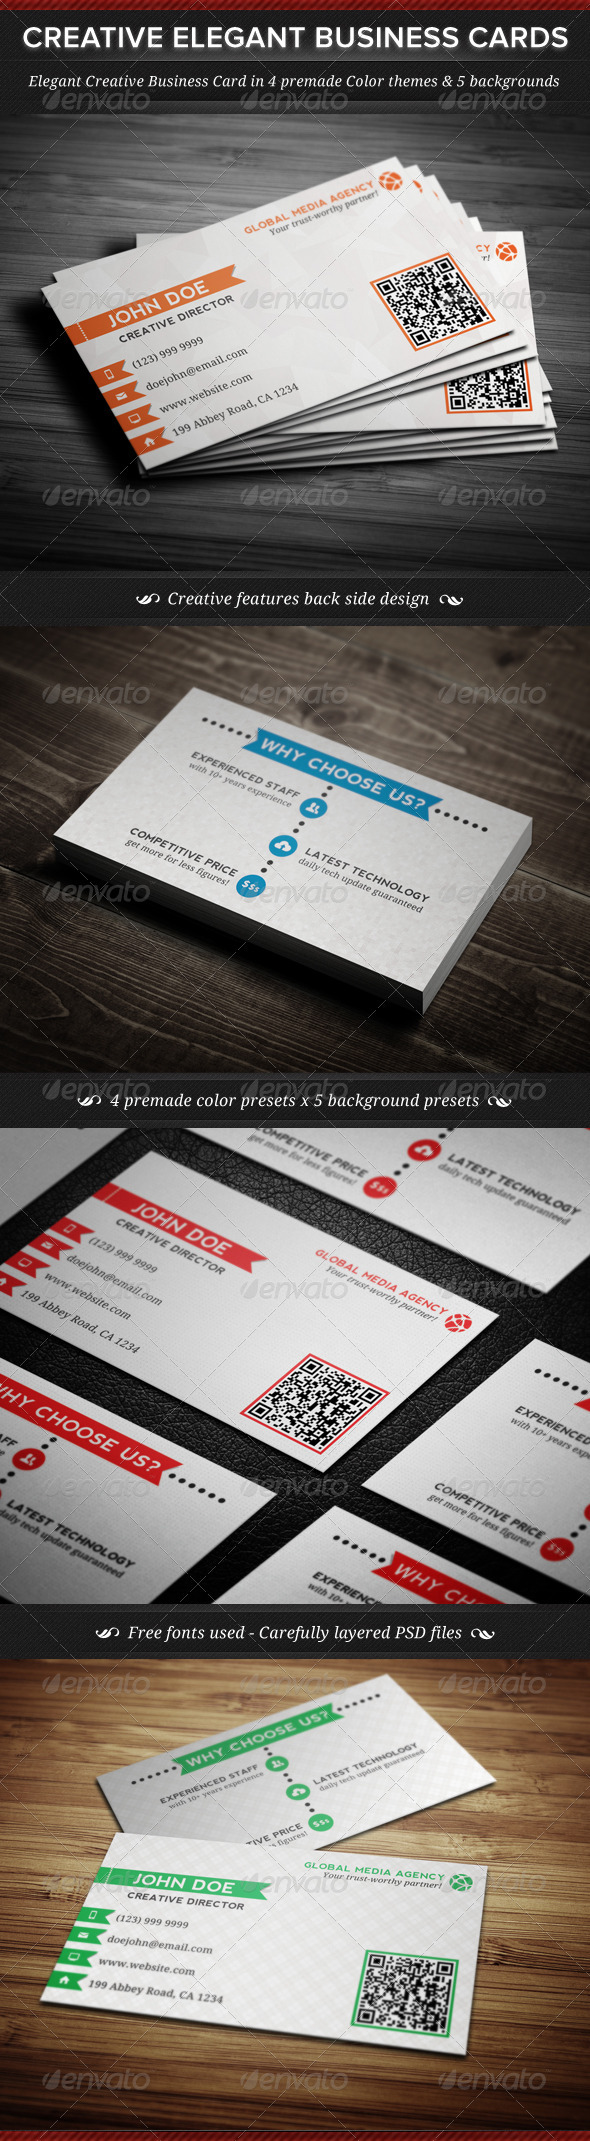 Elegant Creative Business Cards Template - Creative Business Cards